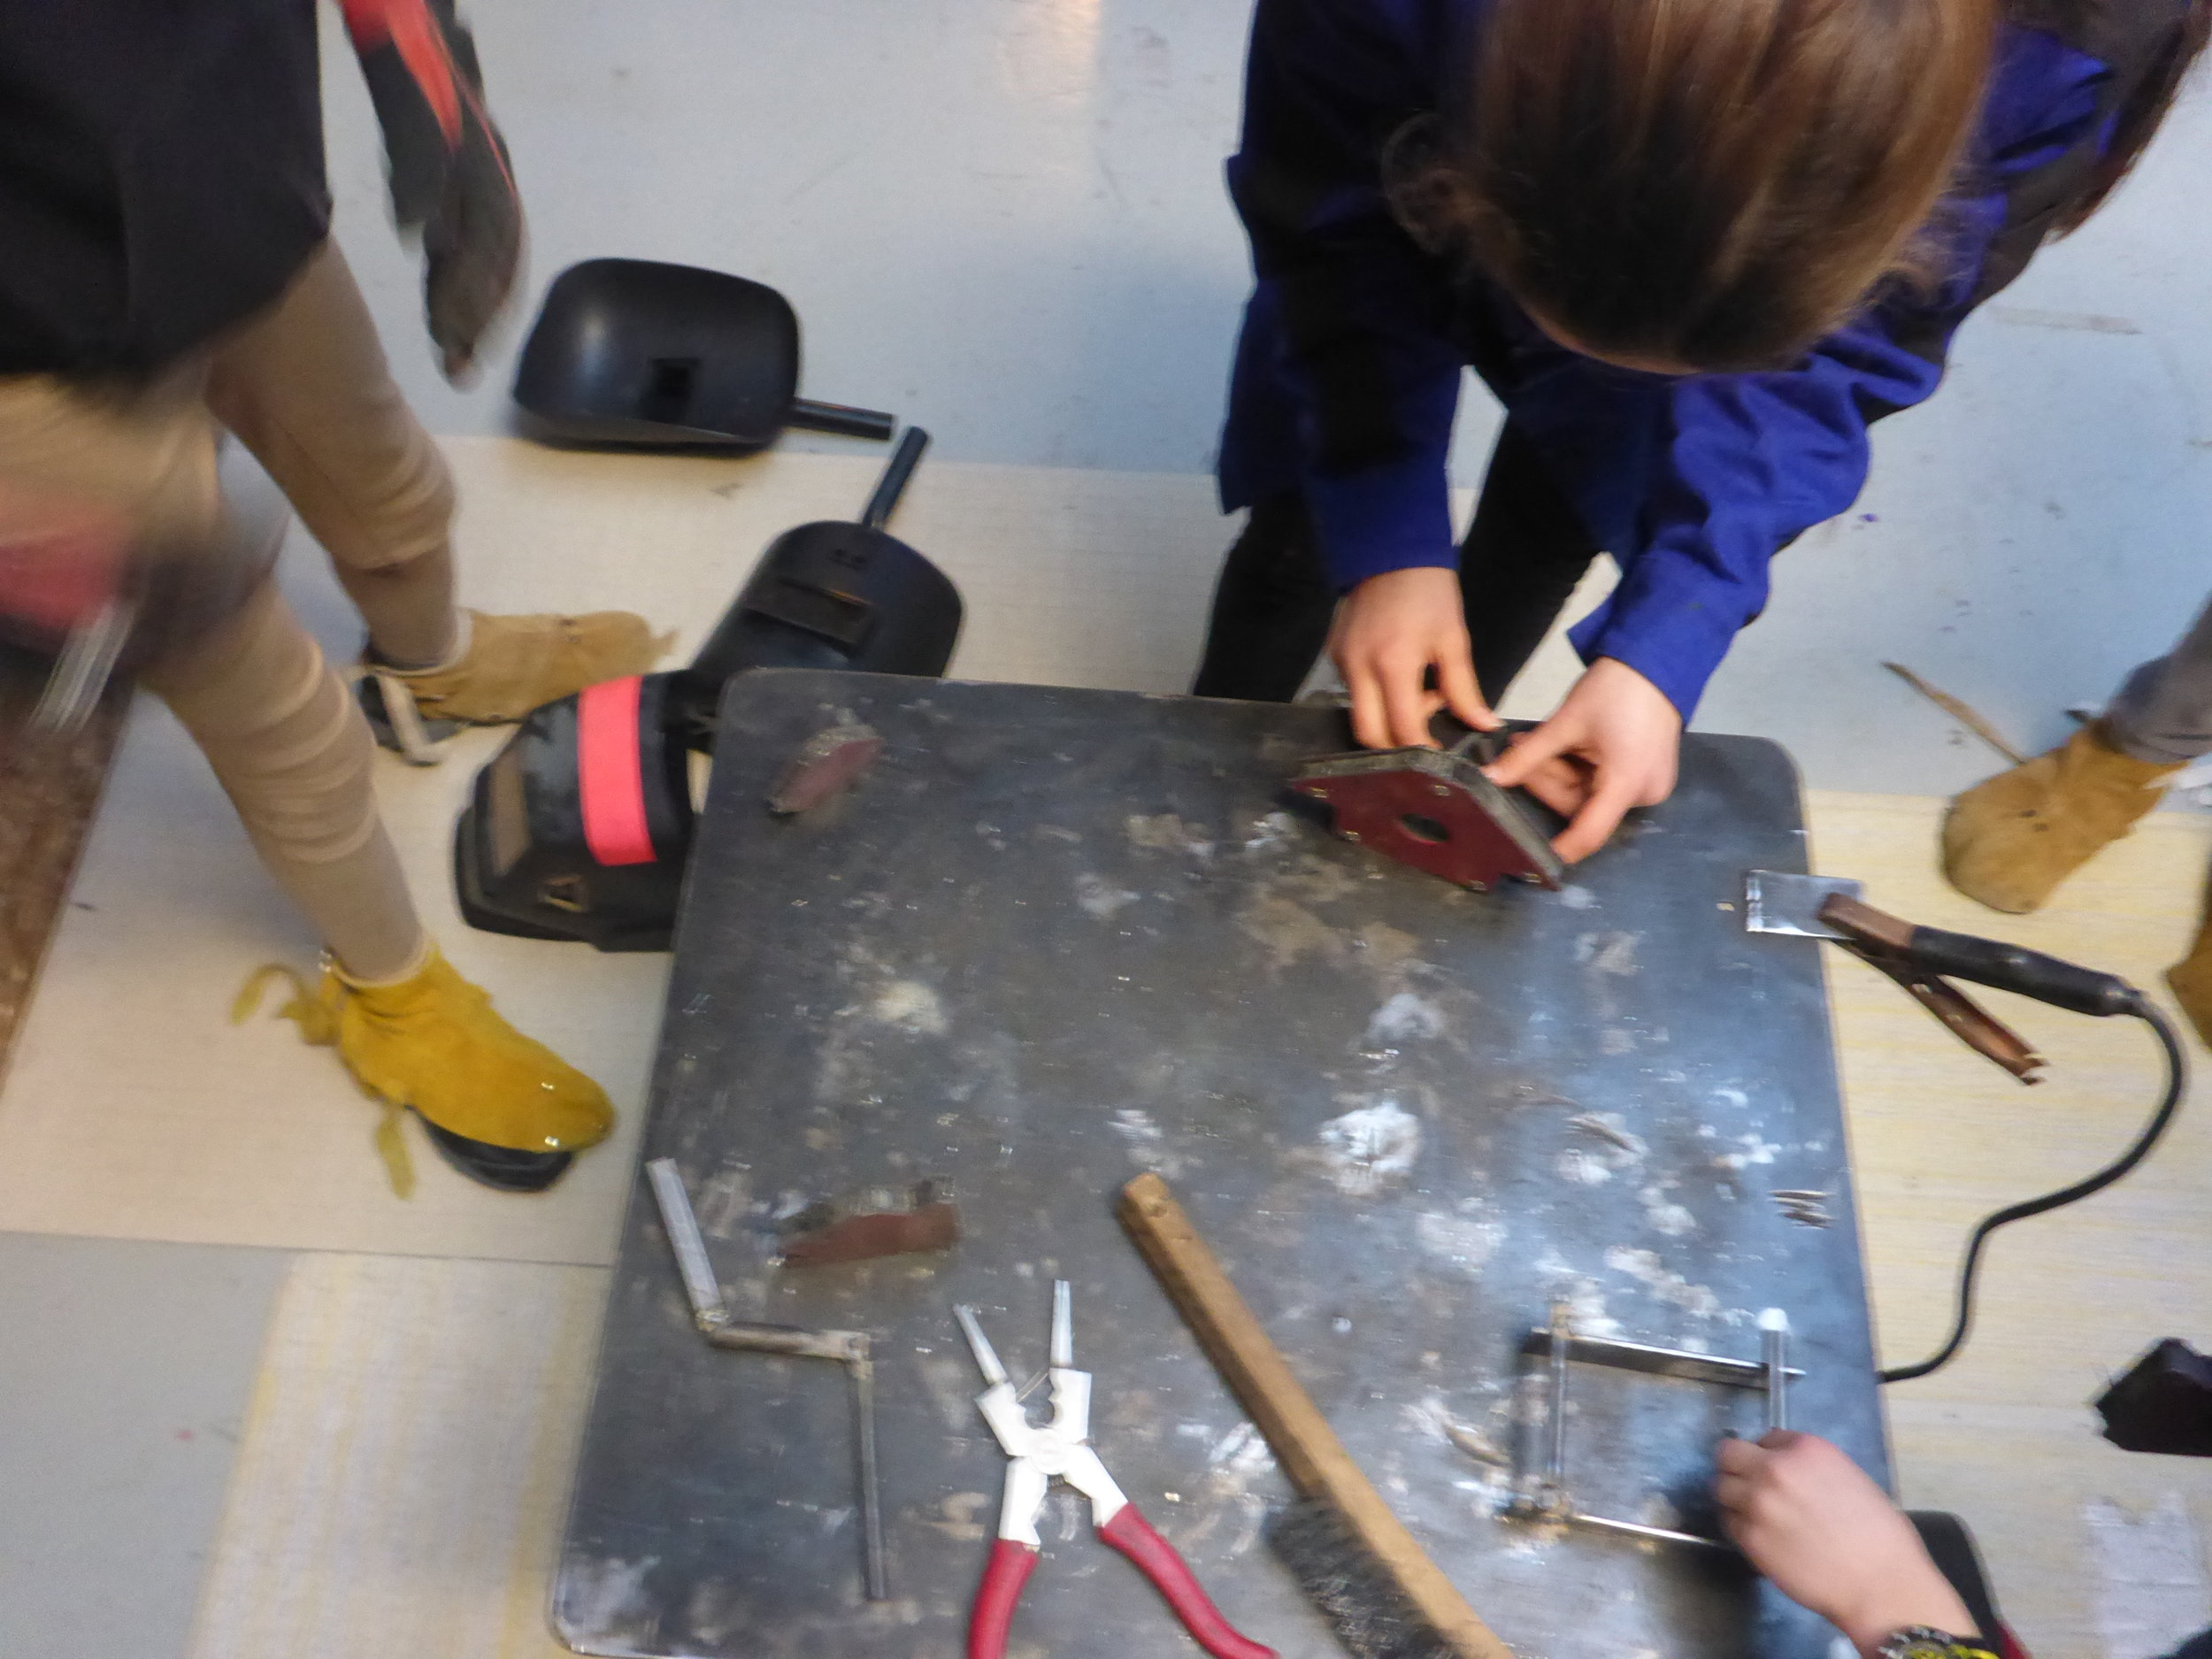 Many busy hands setup their welds on the table, so that the welding gun can move quickly from one person to the next.